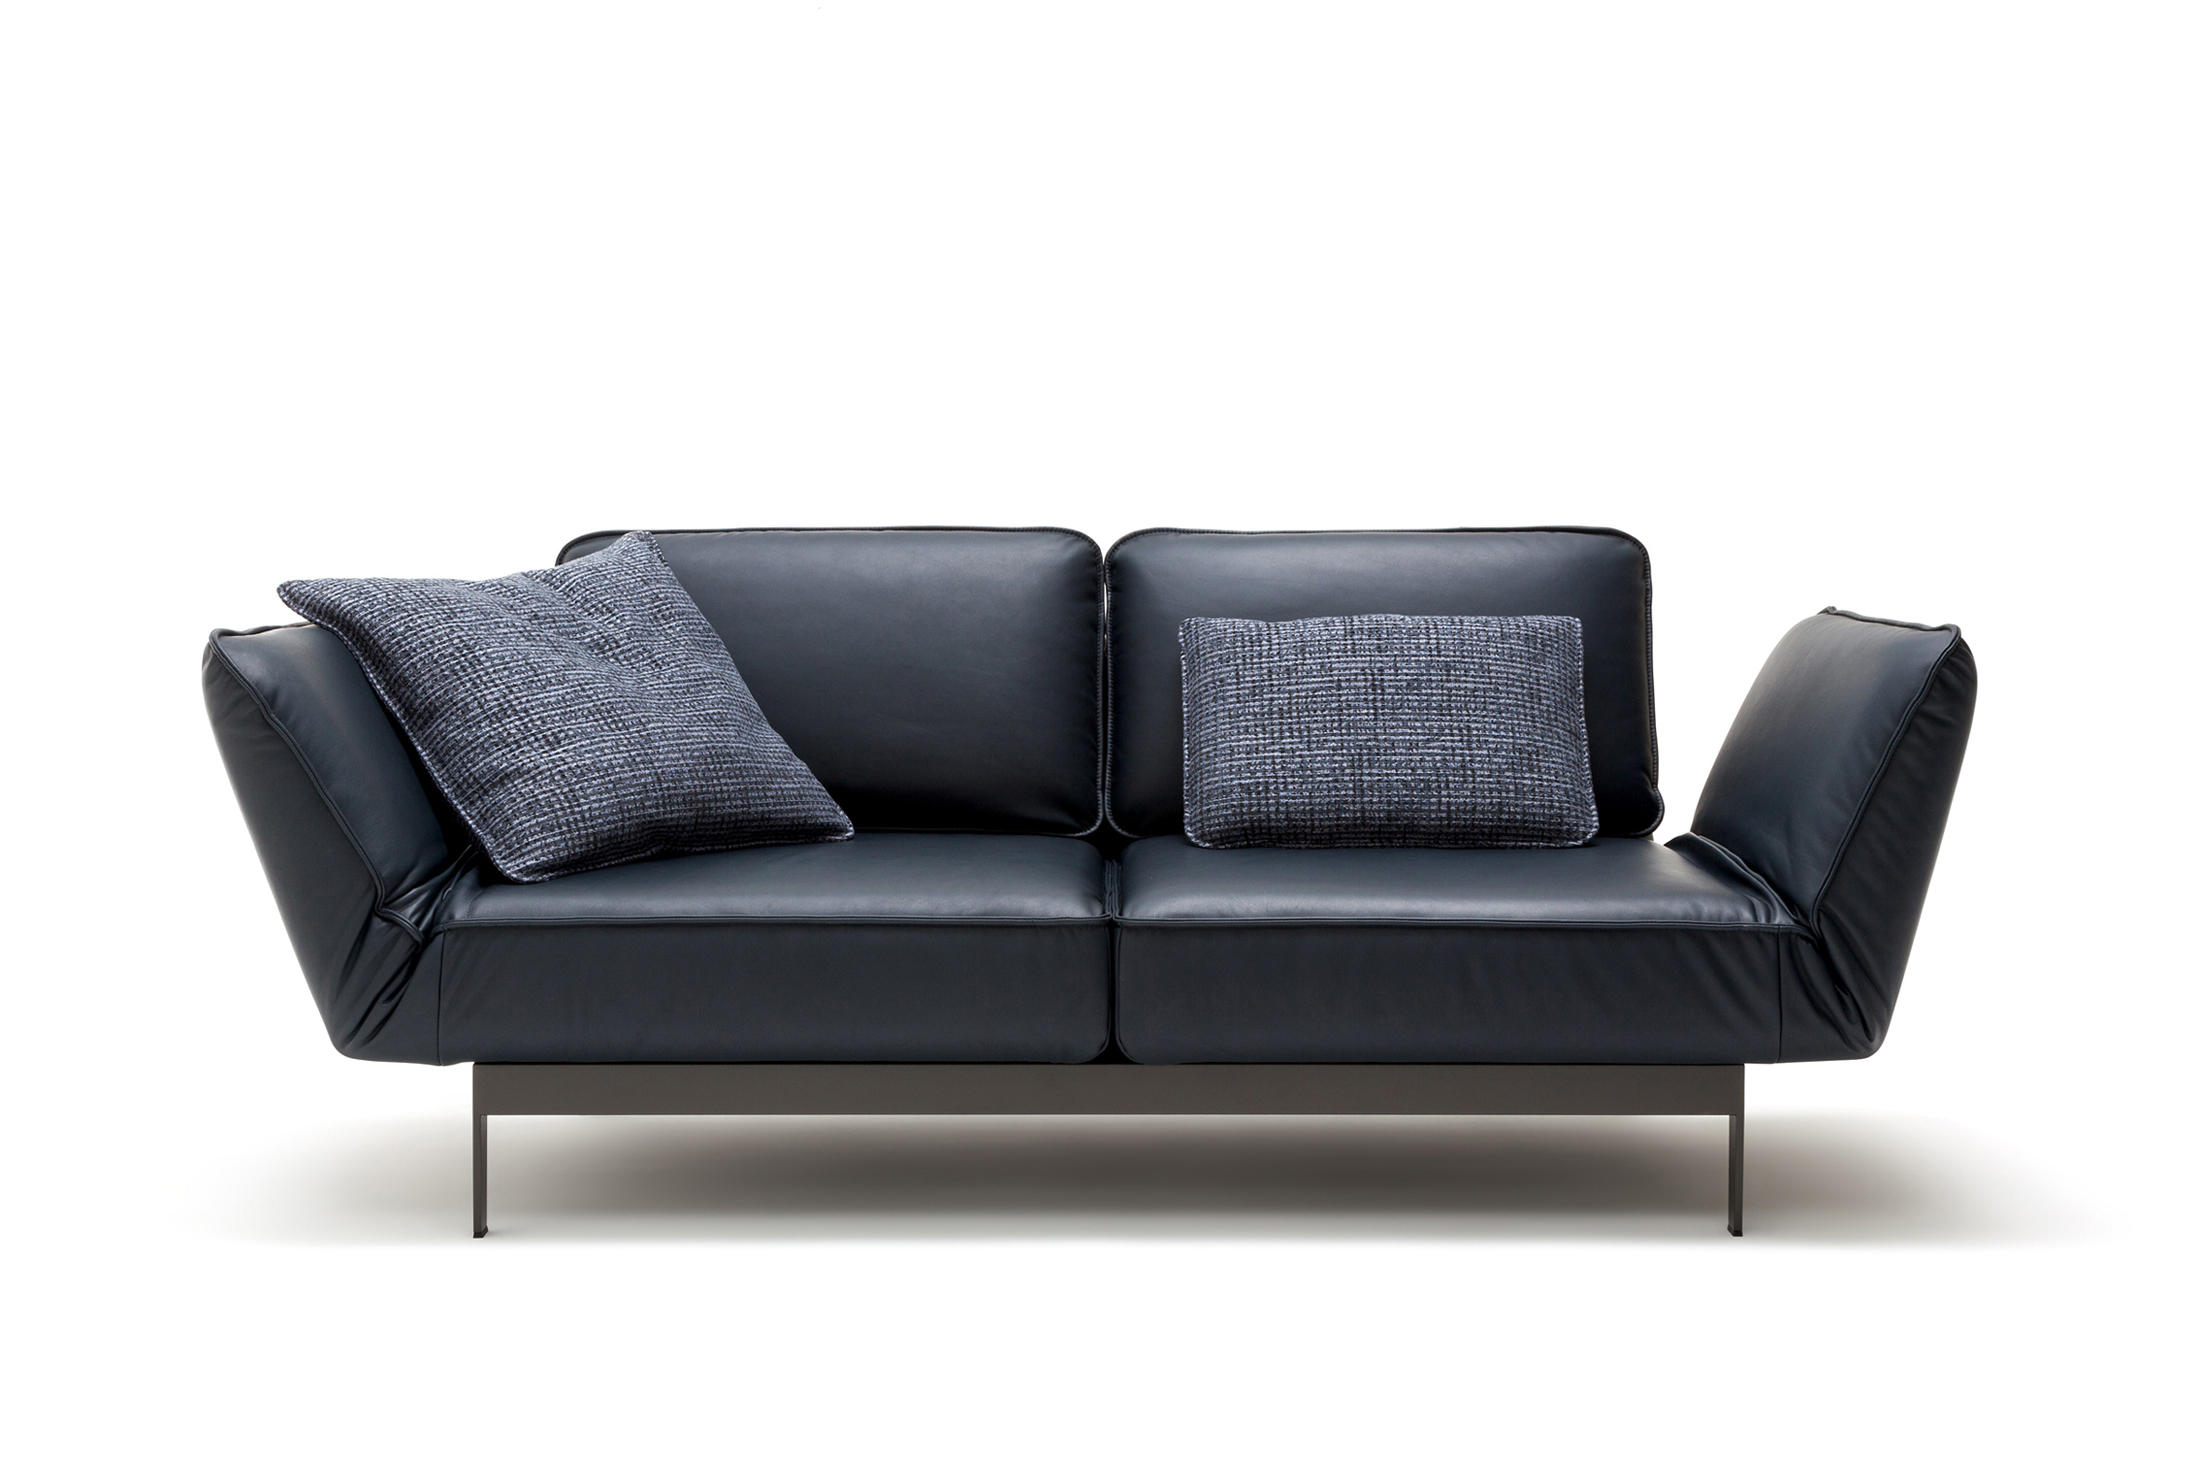 Rolf Benz Sofa 380 Plura Rolf Benz 386 Mera Sofas From Rolf Benz Architonic